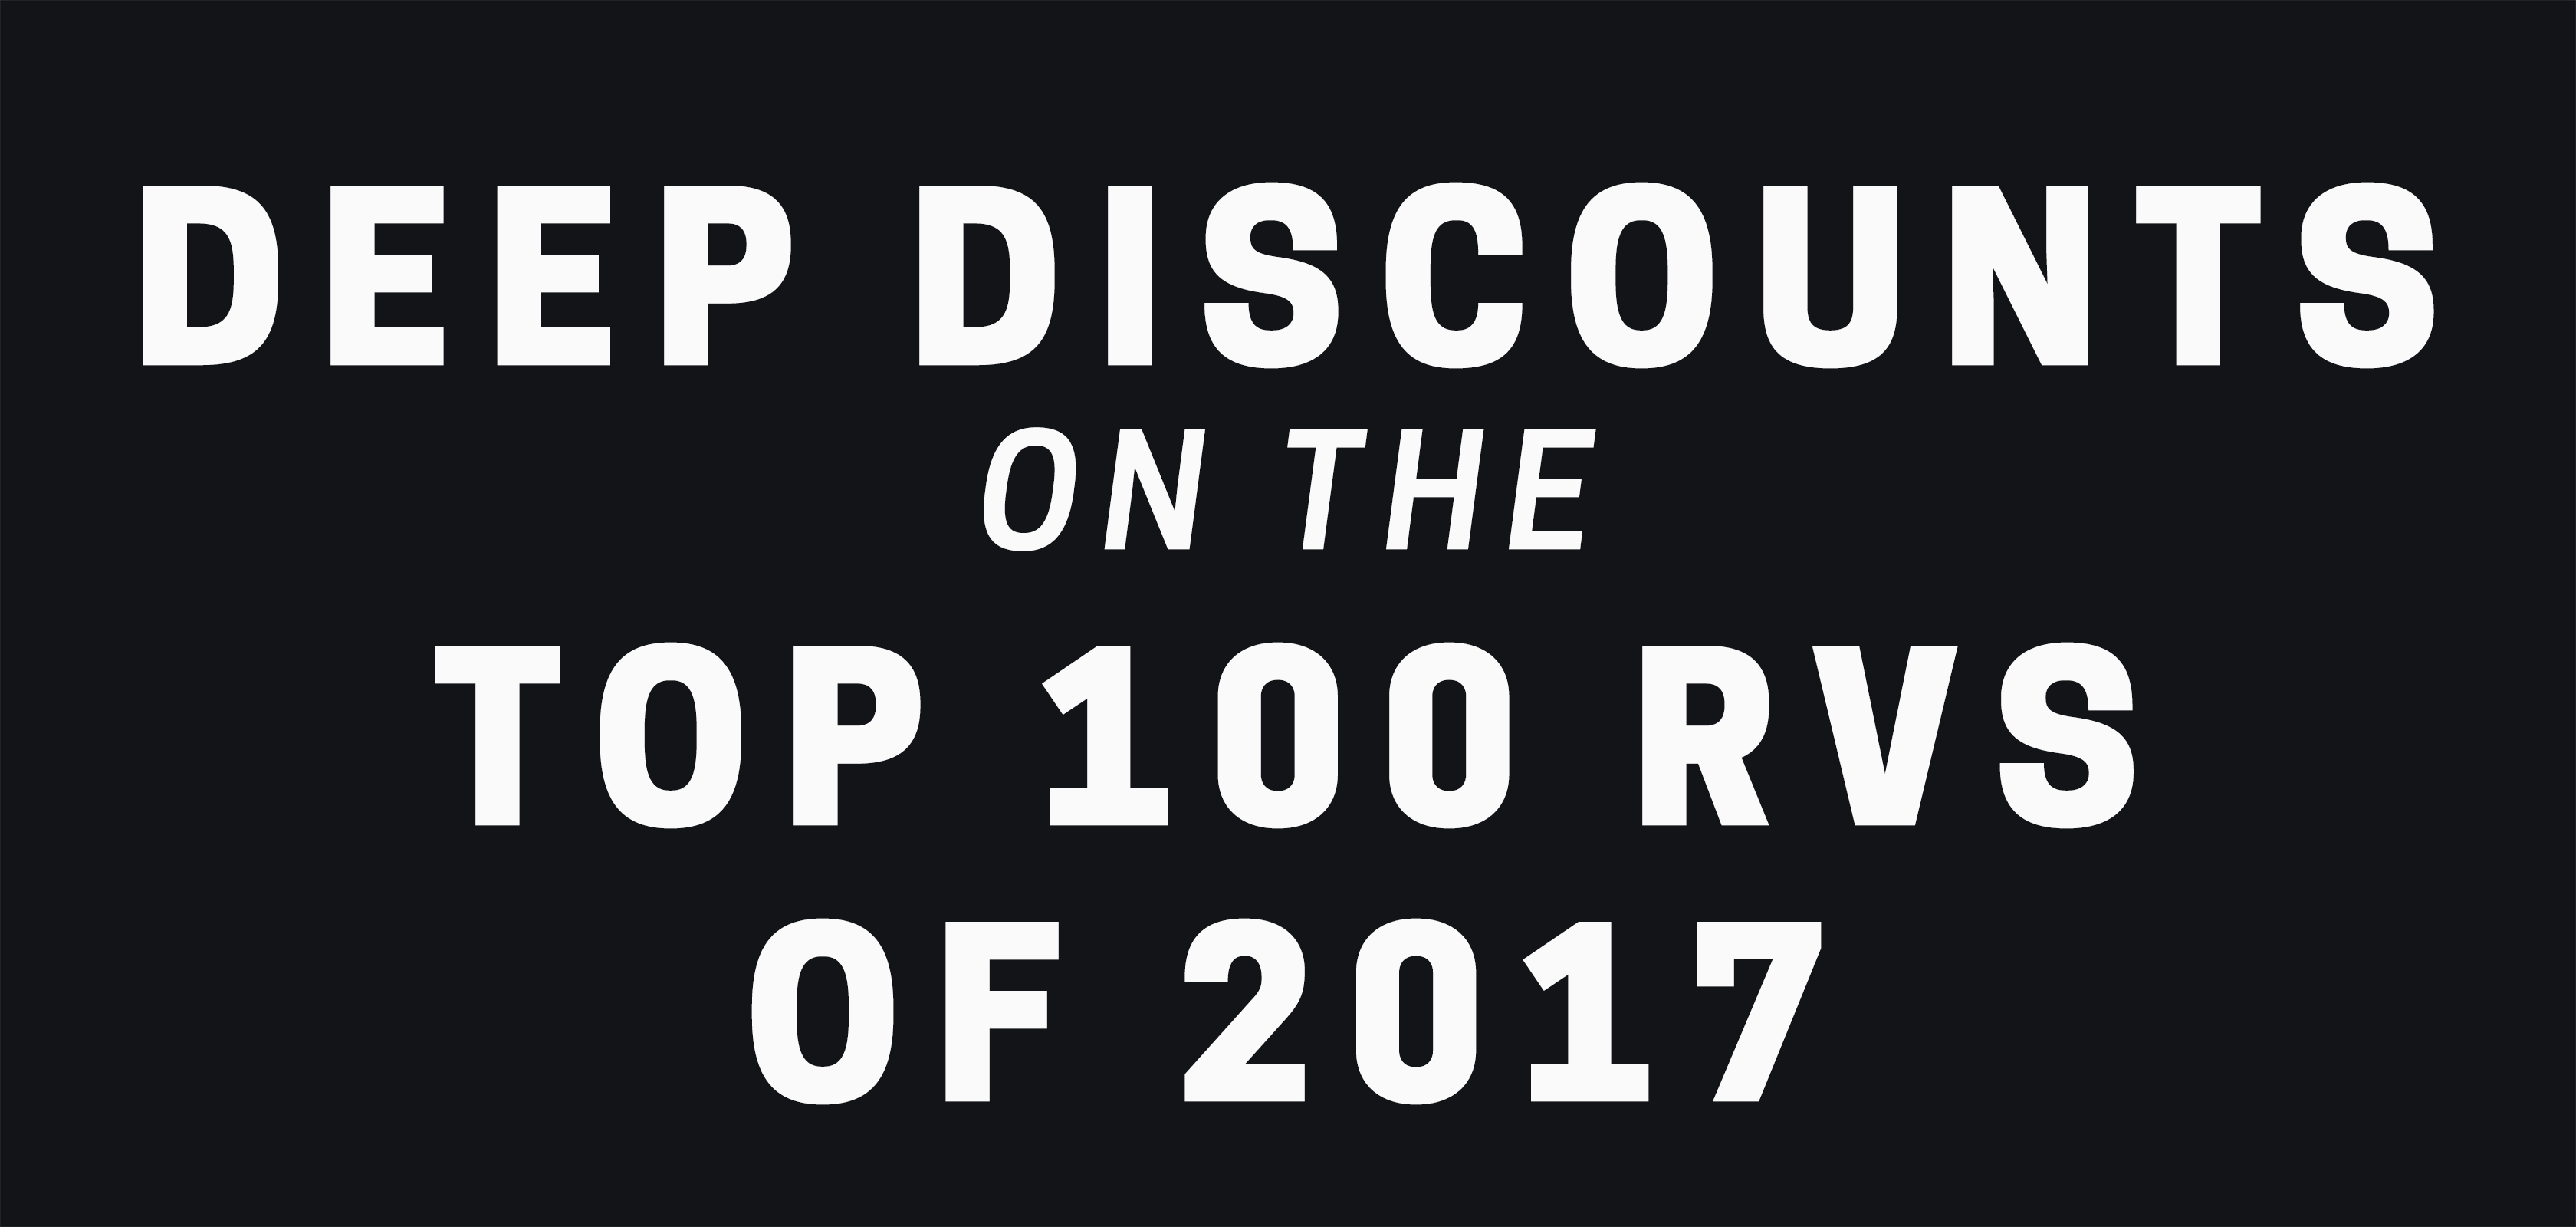 Shop Deep Discounts on 2017 RVs